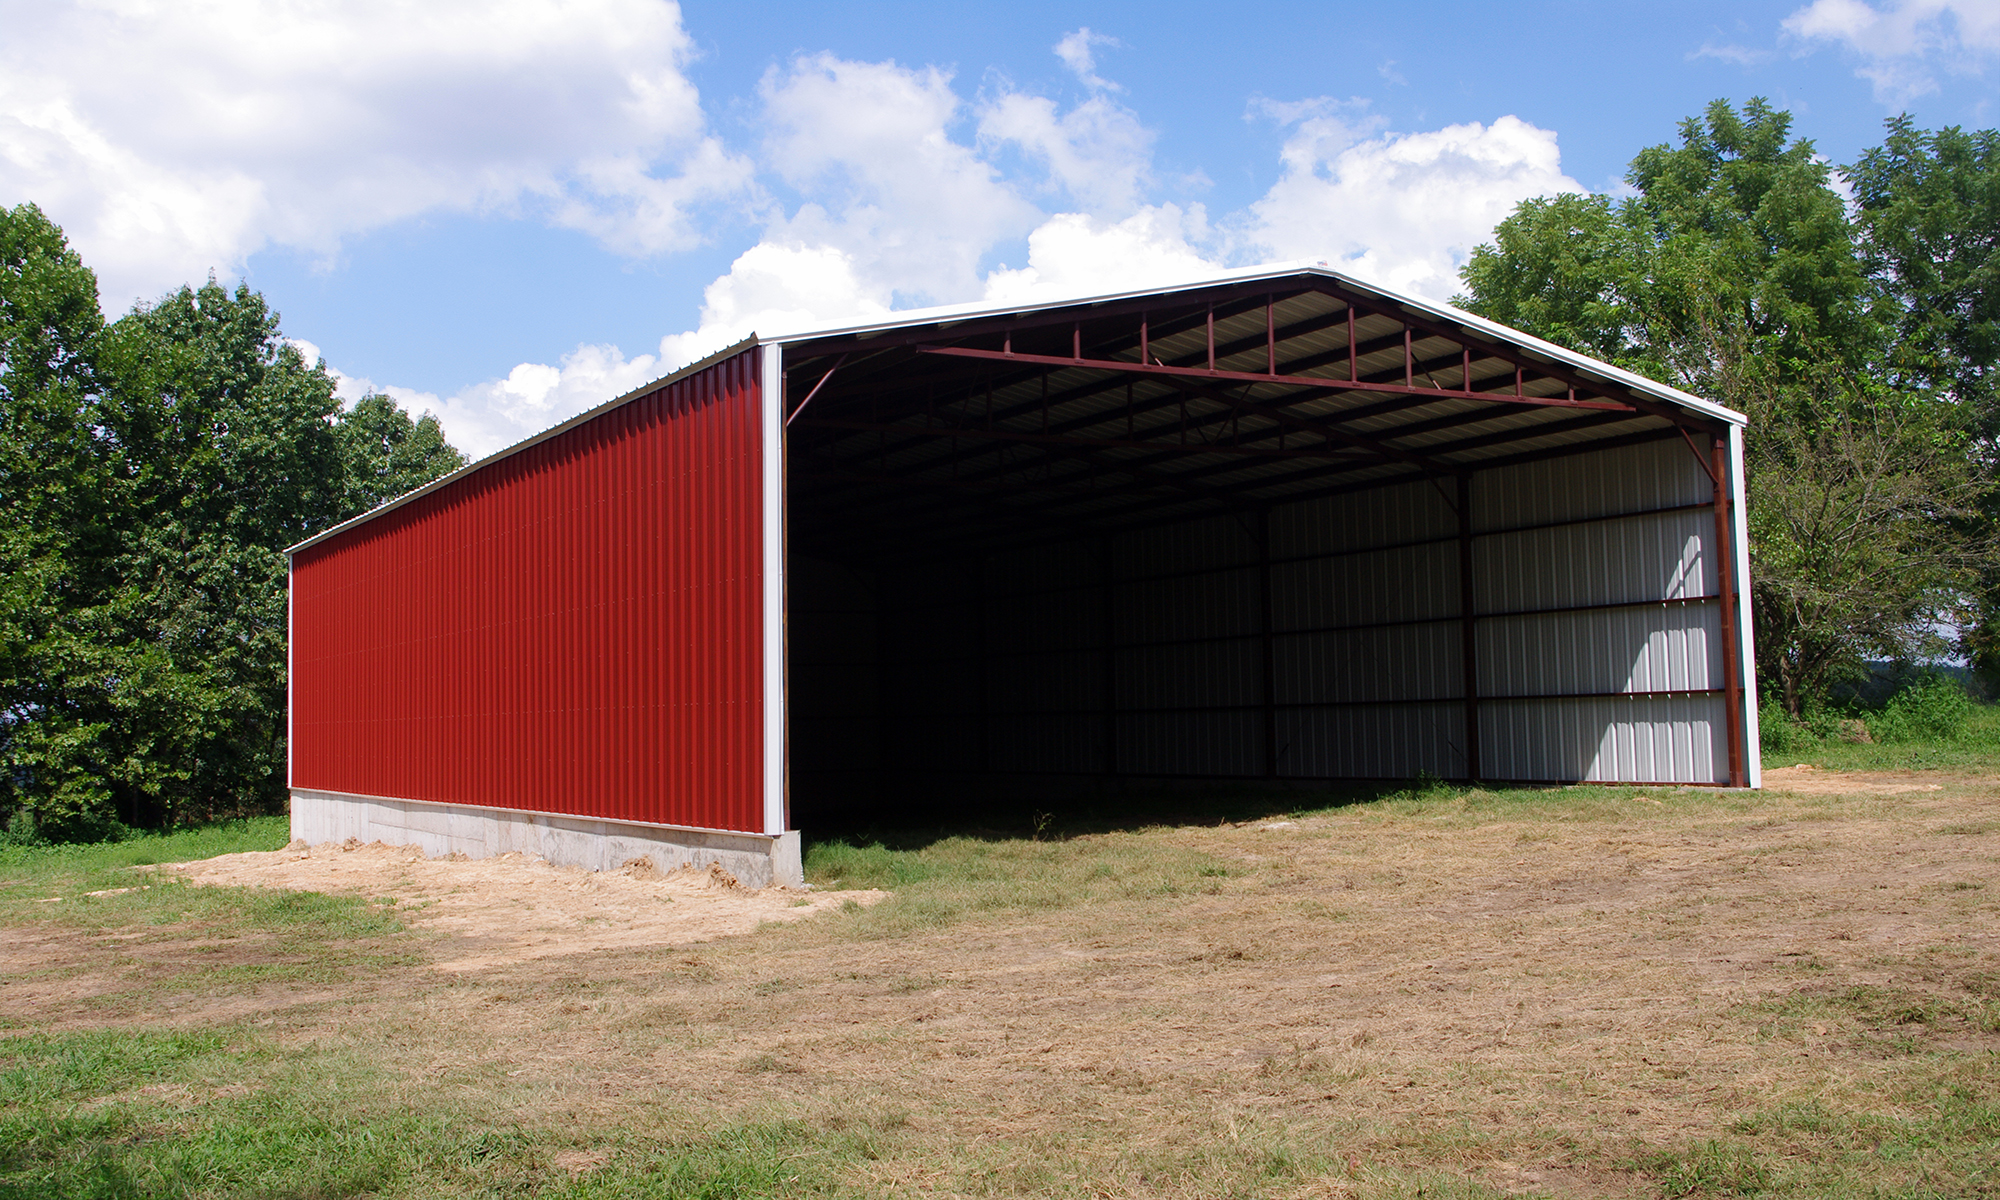 Global steel buildings diy steel building kits for Garage building kits canada